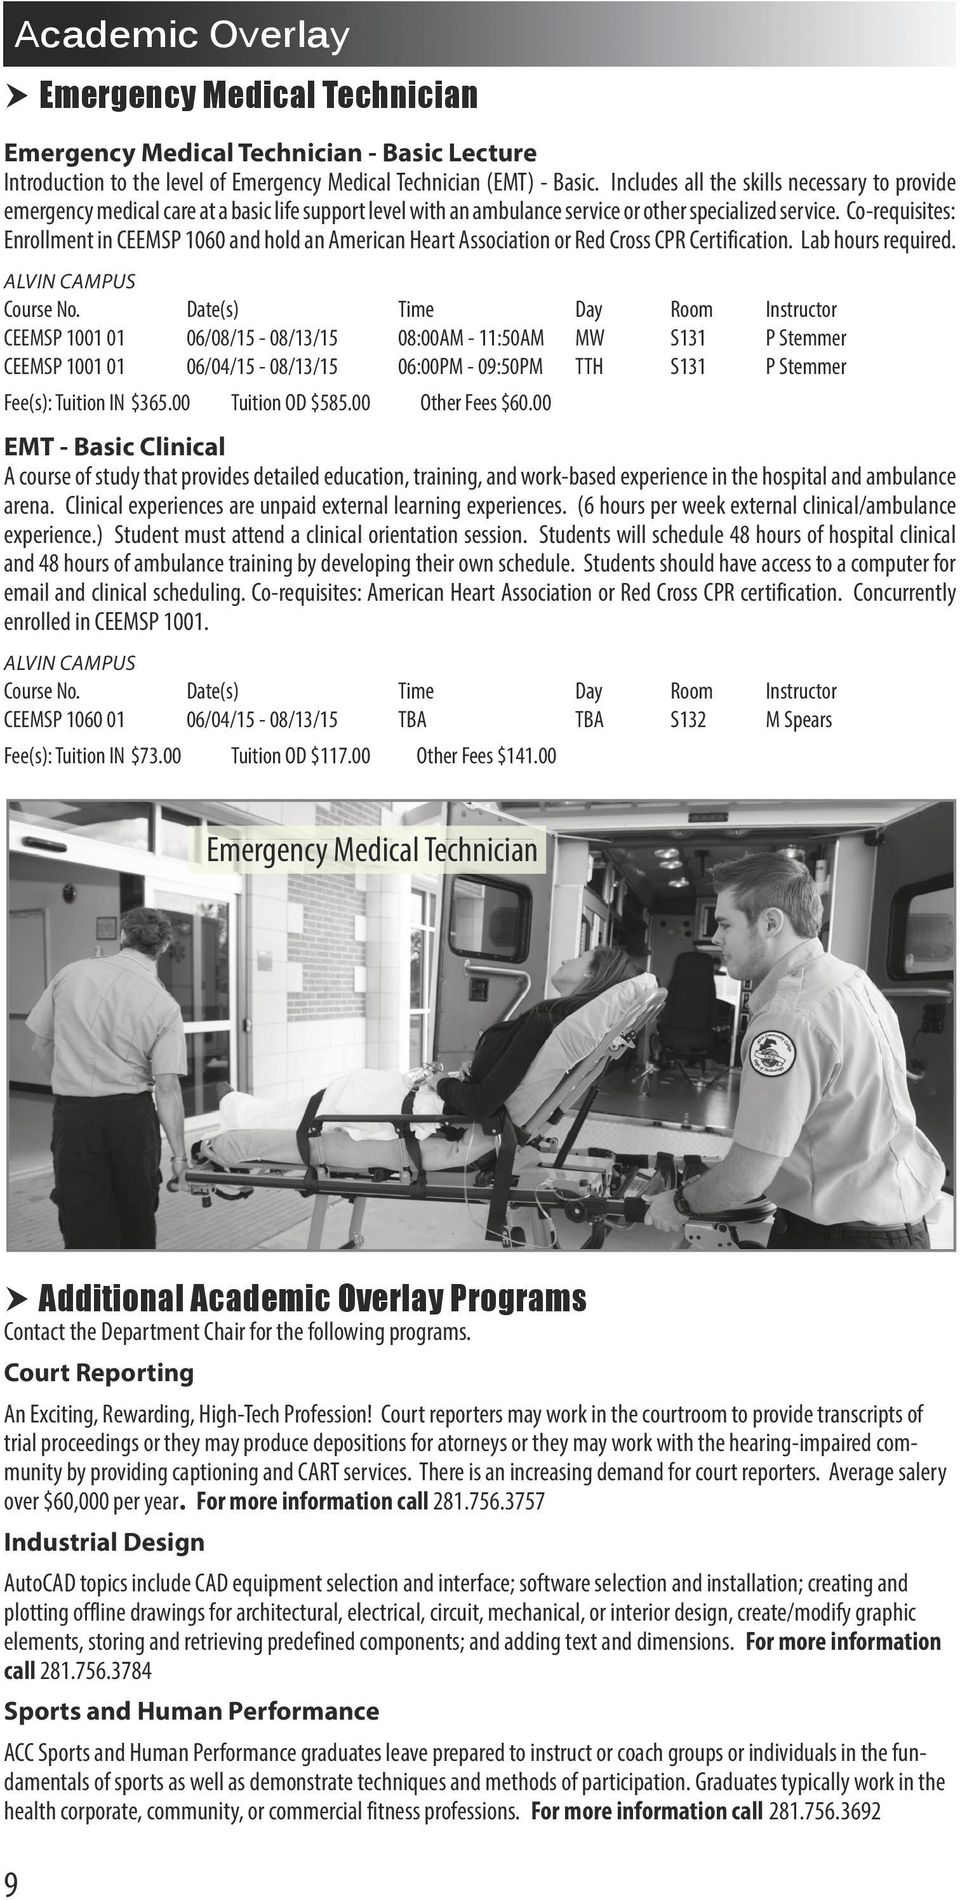 Co-requisites: Enrollment in CEEMSP 1060 and hold an American Heart Association or Red Cross CPR Certification. Lab hours required.